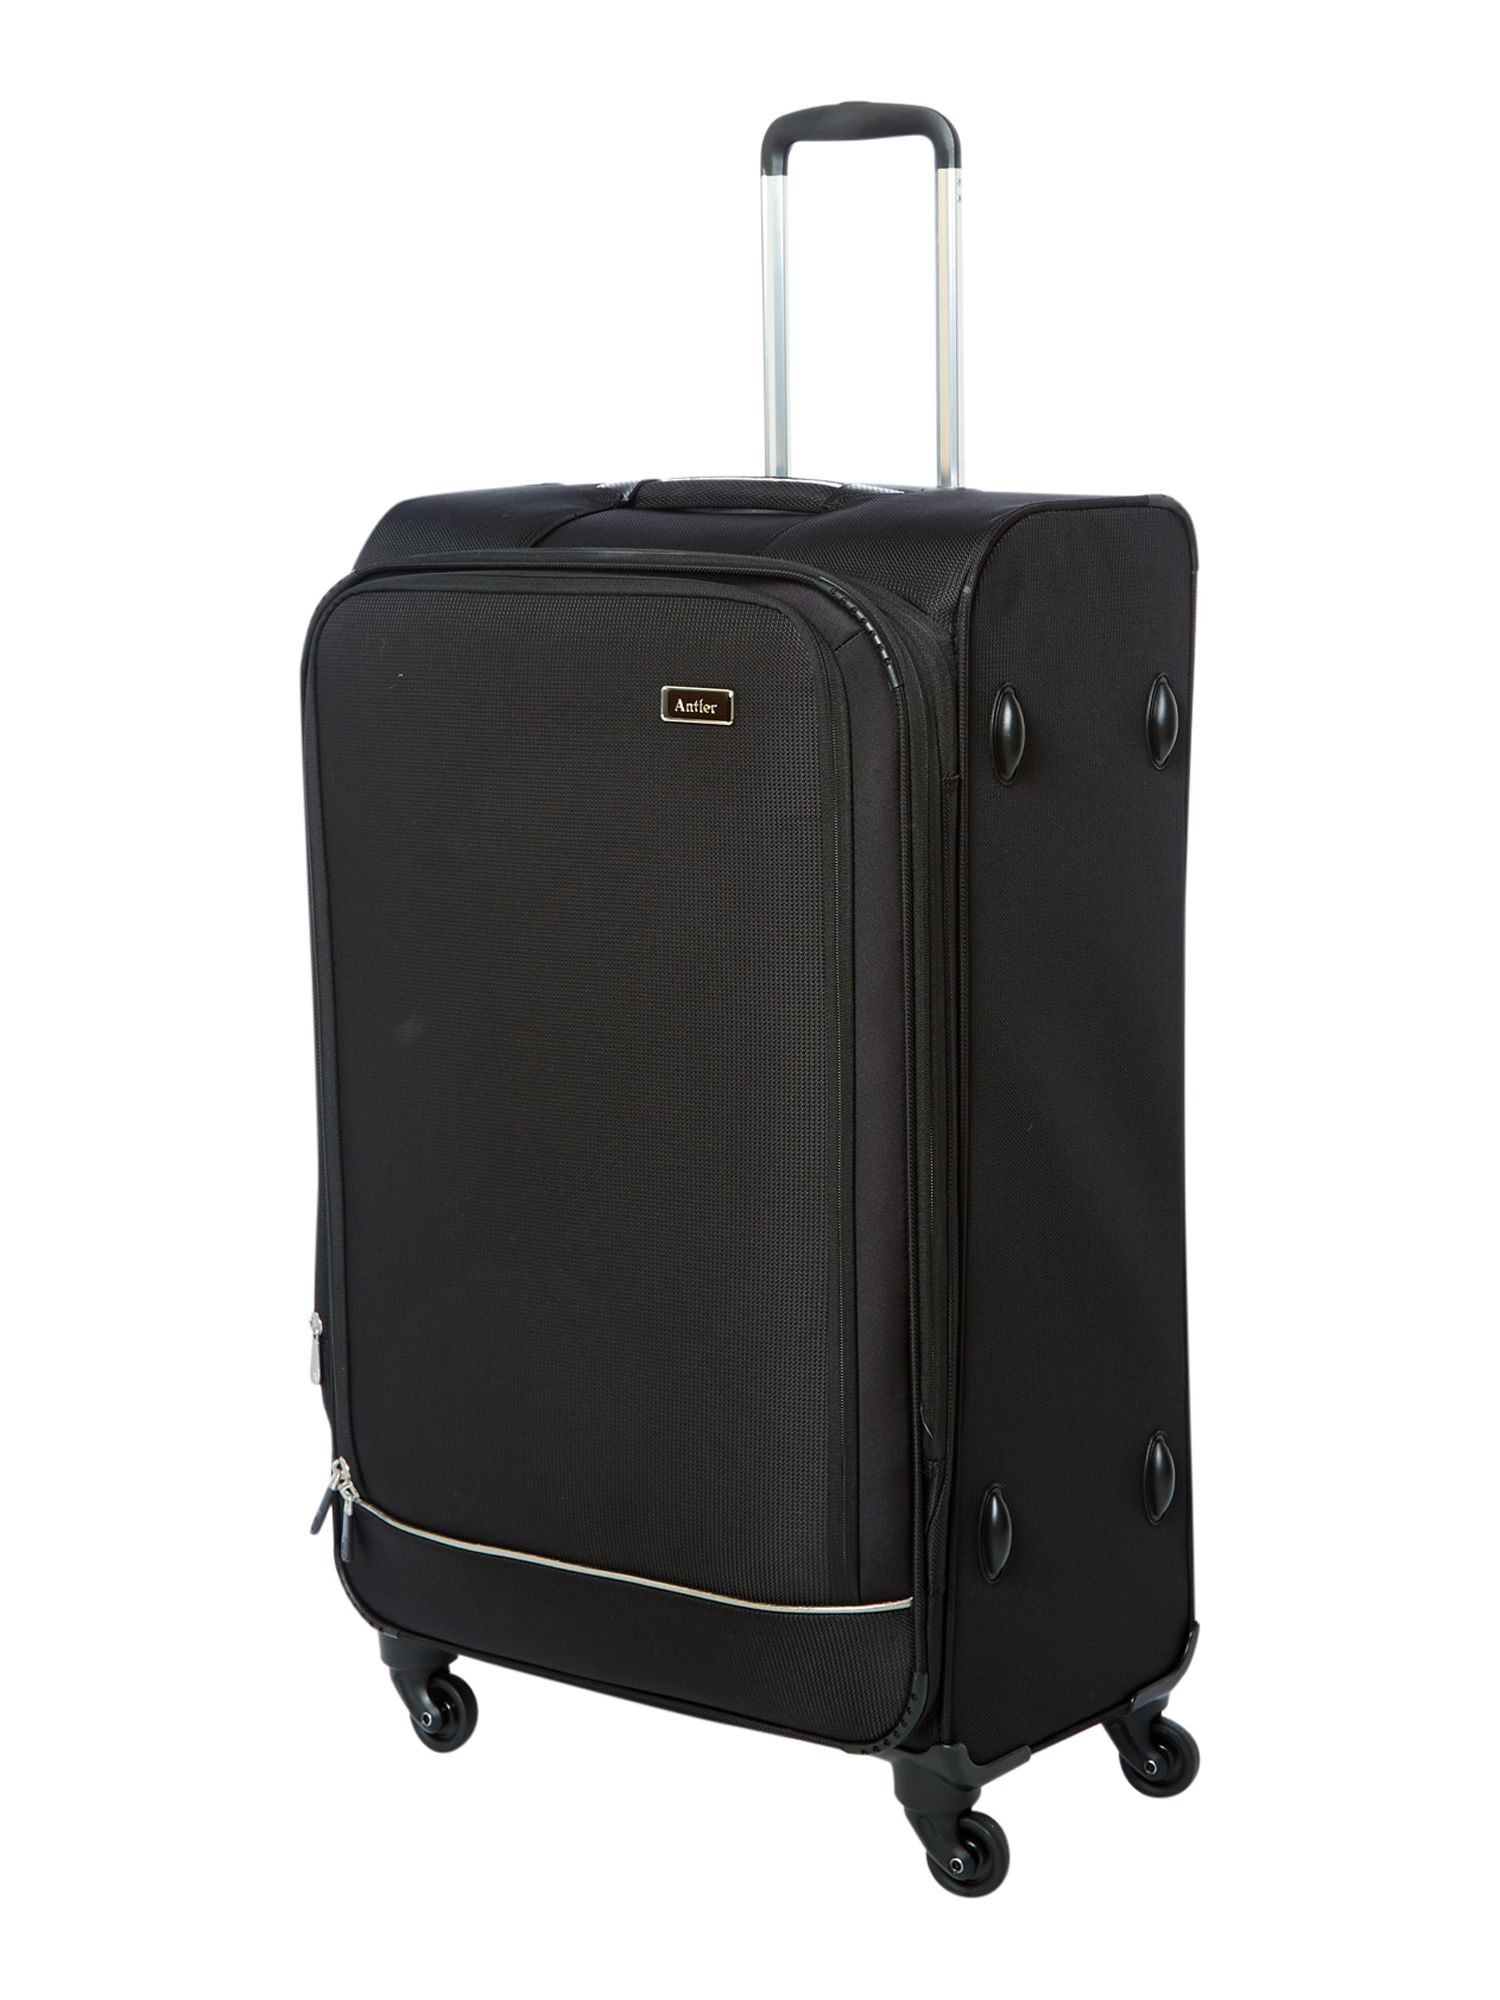 Stephano large black suitcase